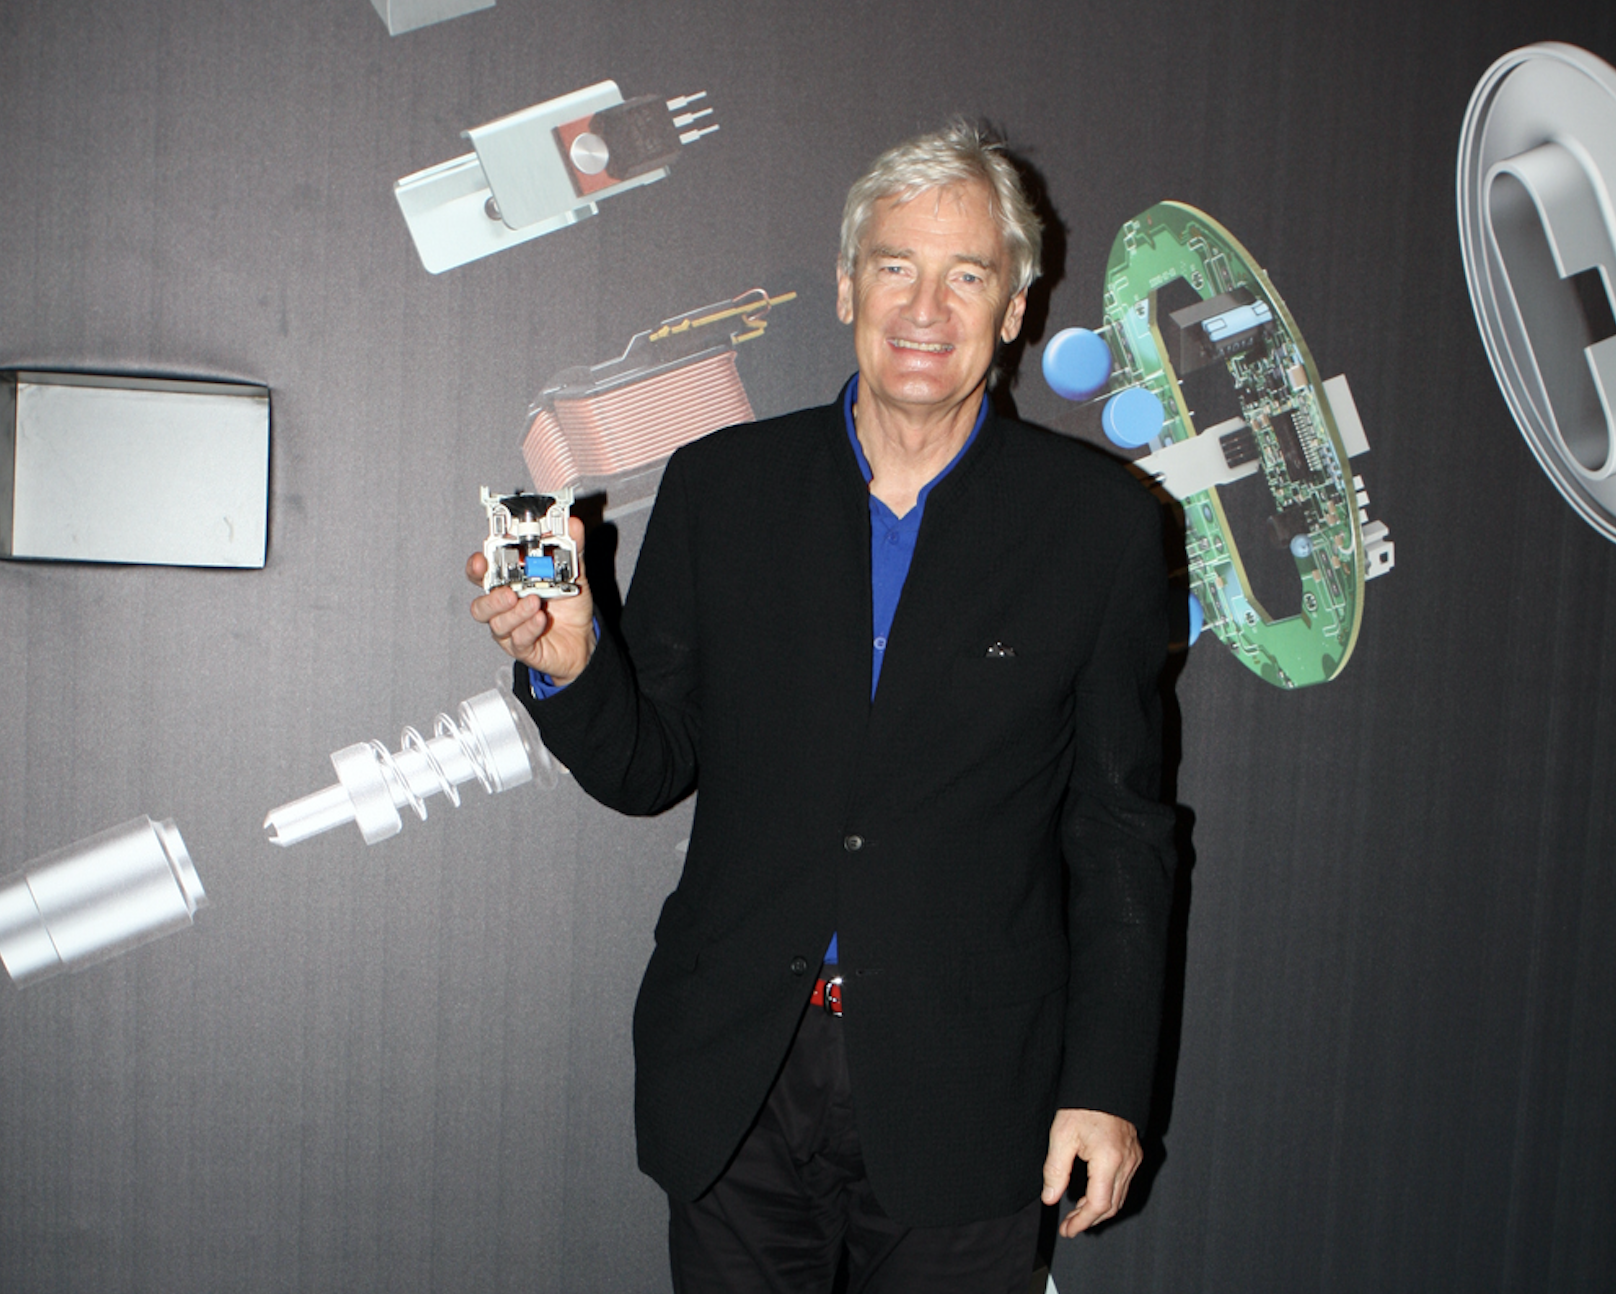 James Dyson, founder of Dyson company. Photo courtesy: Wiki